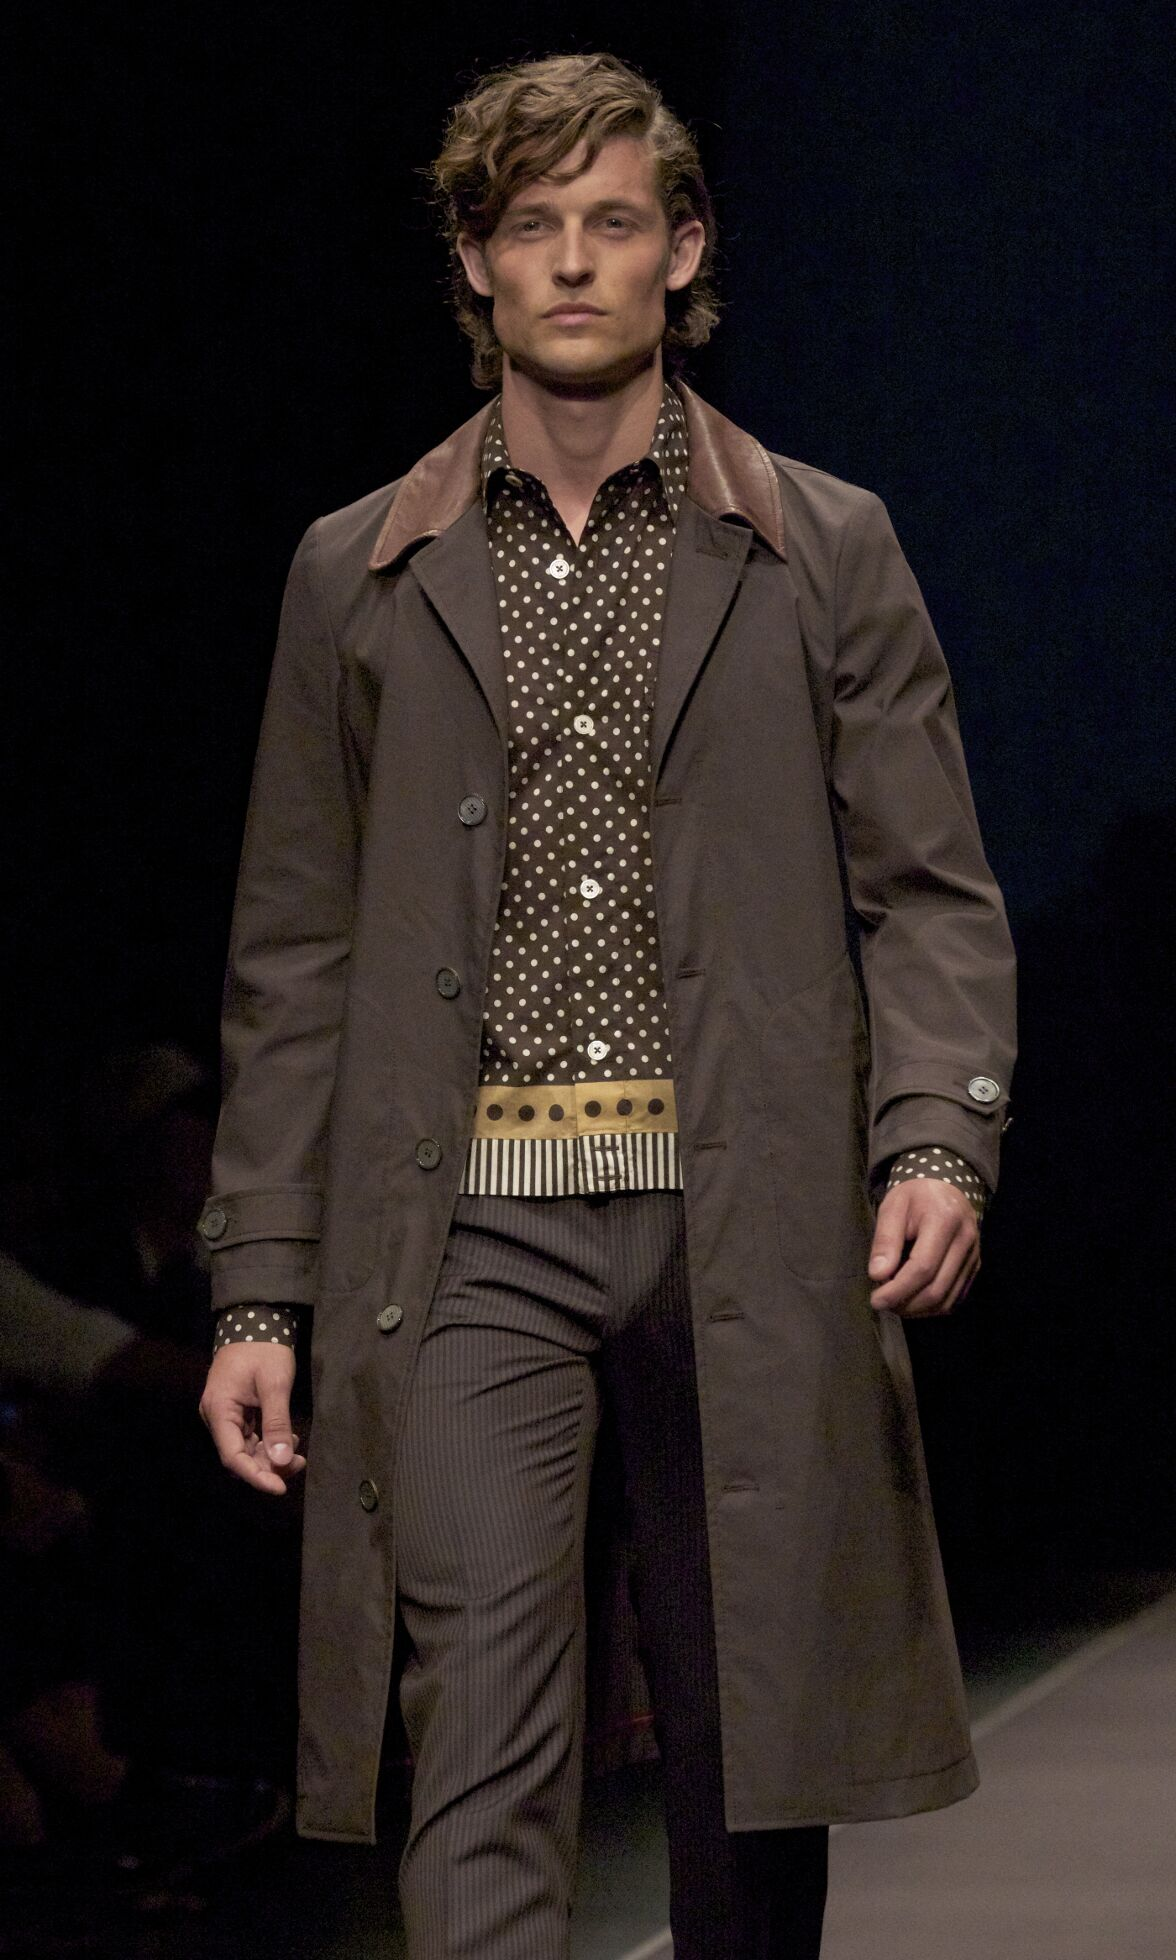 CANALI SPRING SUMMER 2014 MEN'S COLLECTION | The Skinny Beep